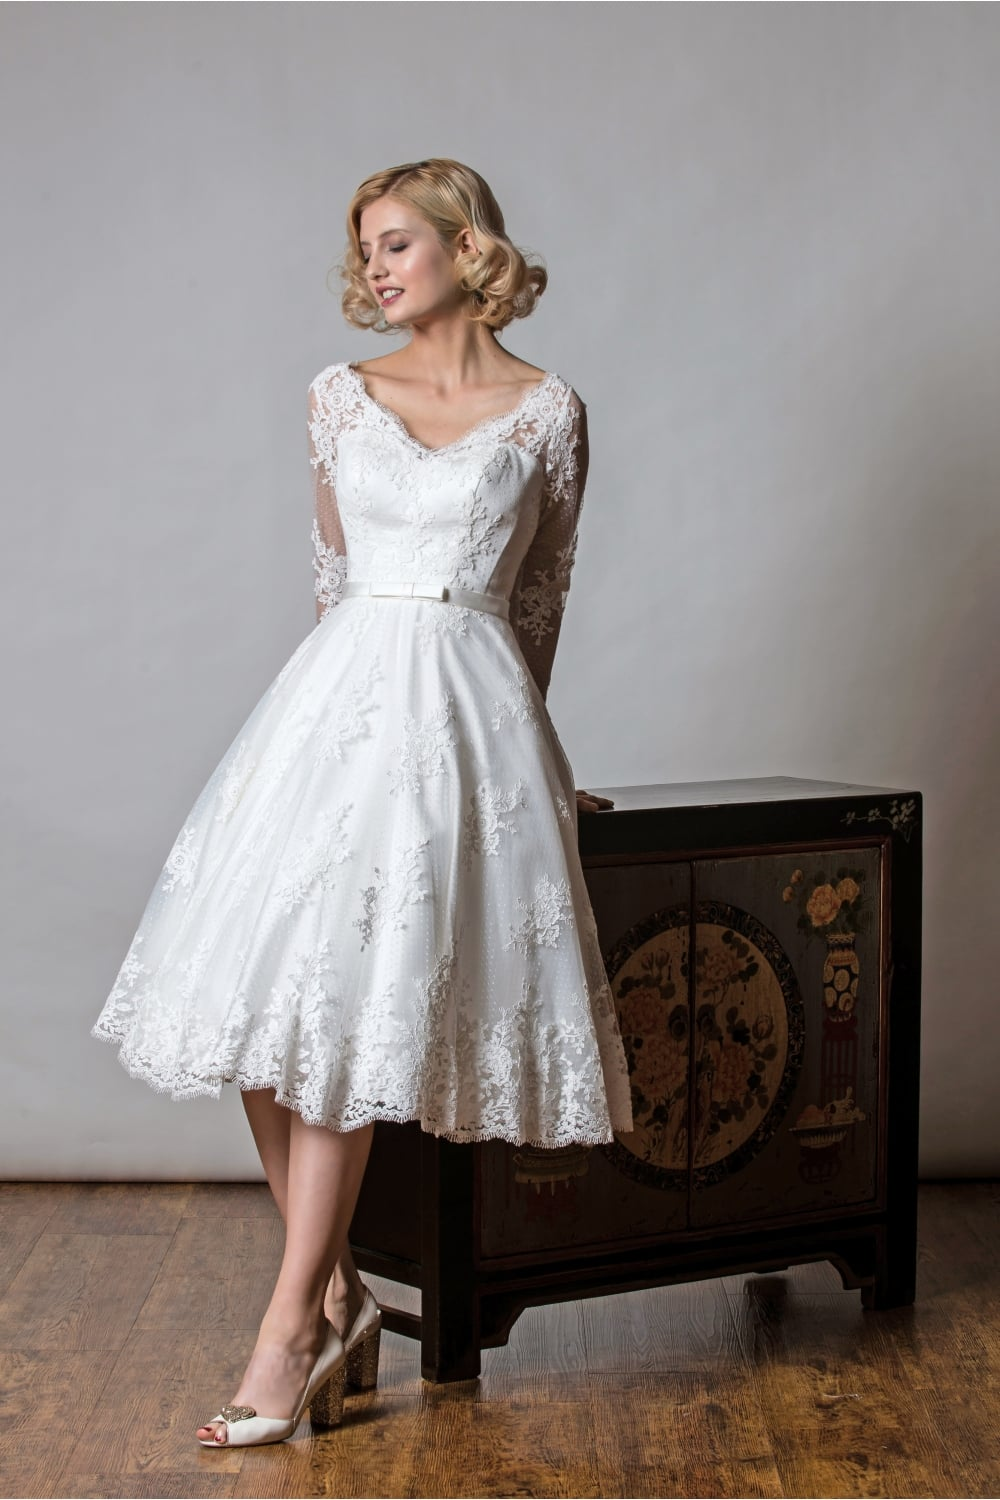 1048 shelley rita mae tea length lace polka short wedding dress sleeves shelley tea length vintage lace polka dot short wedding dress with sleeves junglespirit Gallery